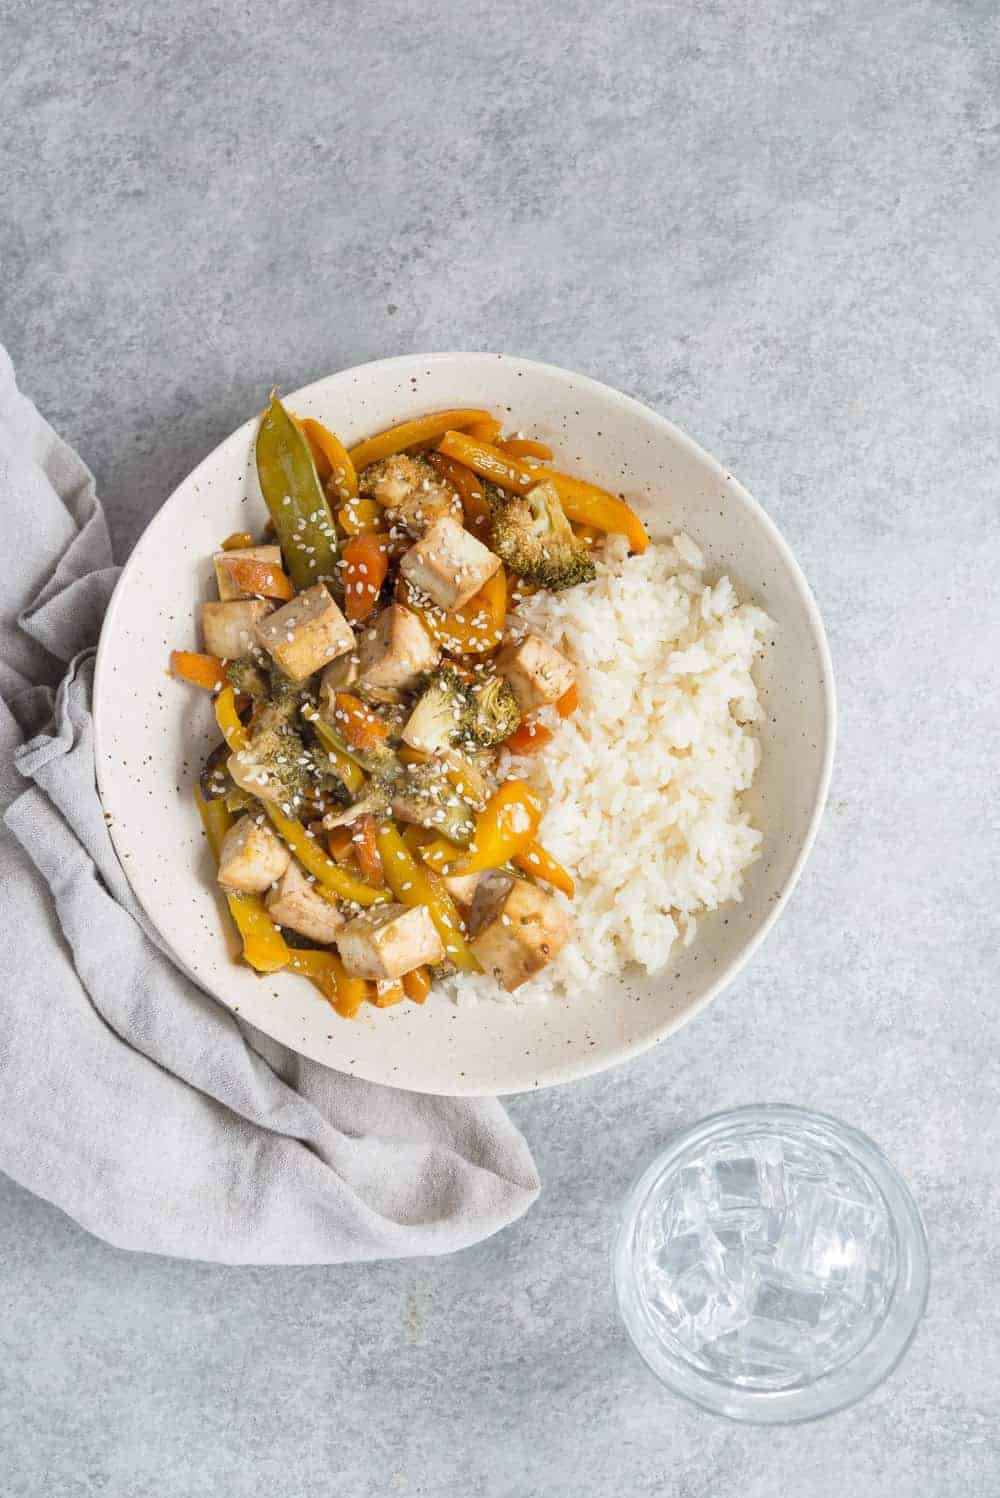 vegan stir fry with tofu